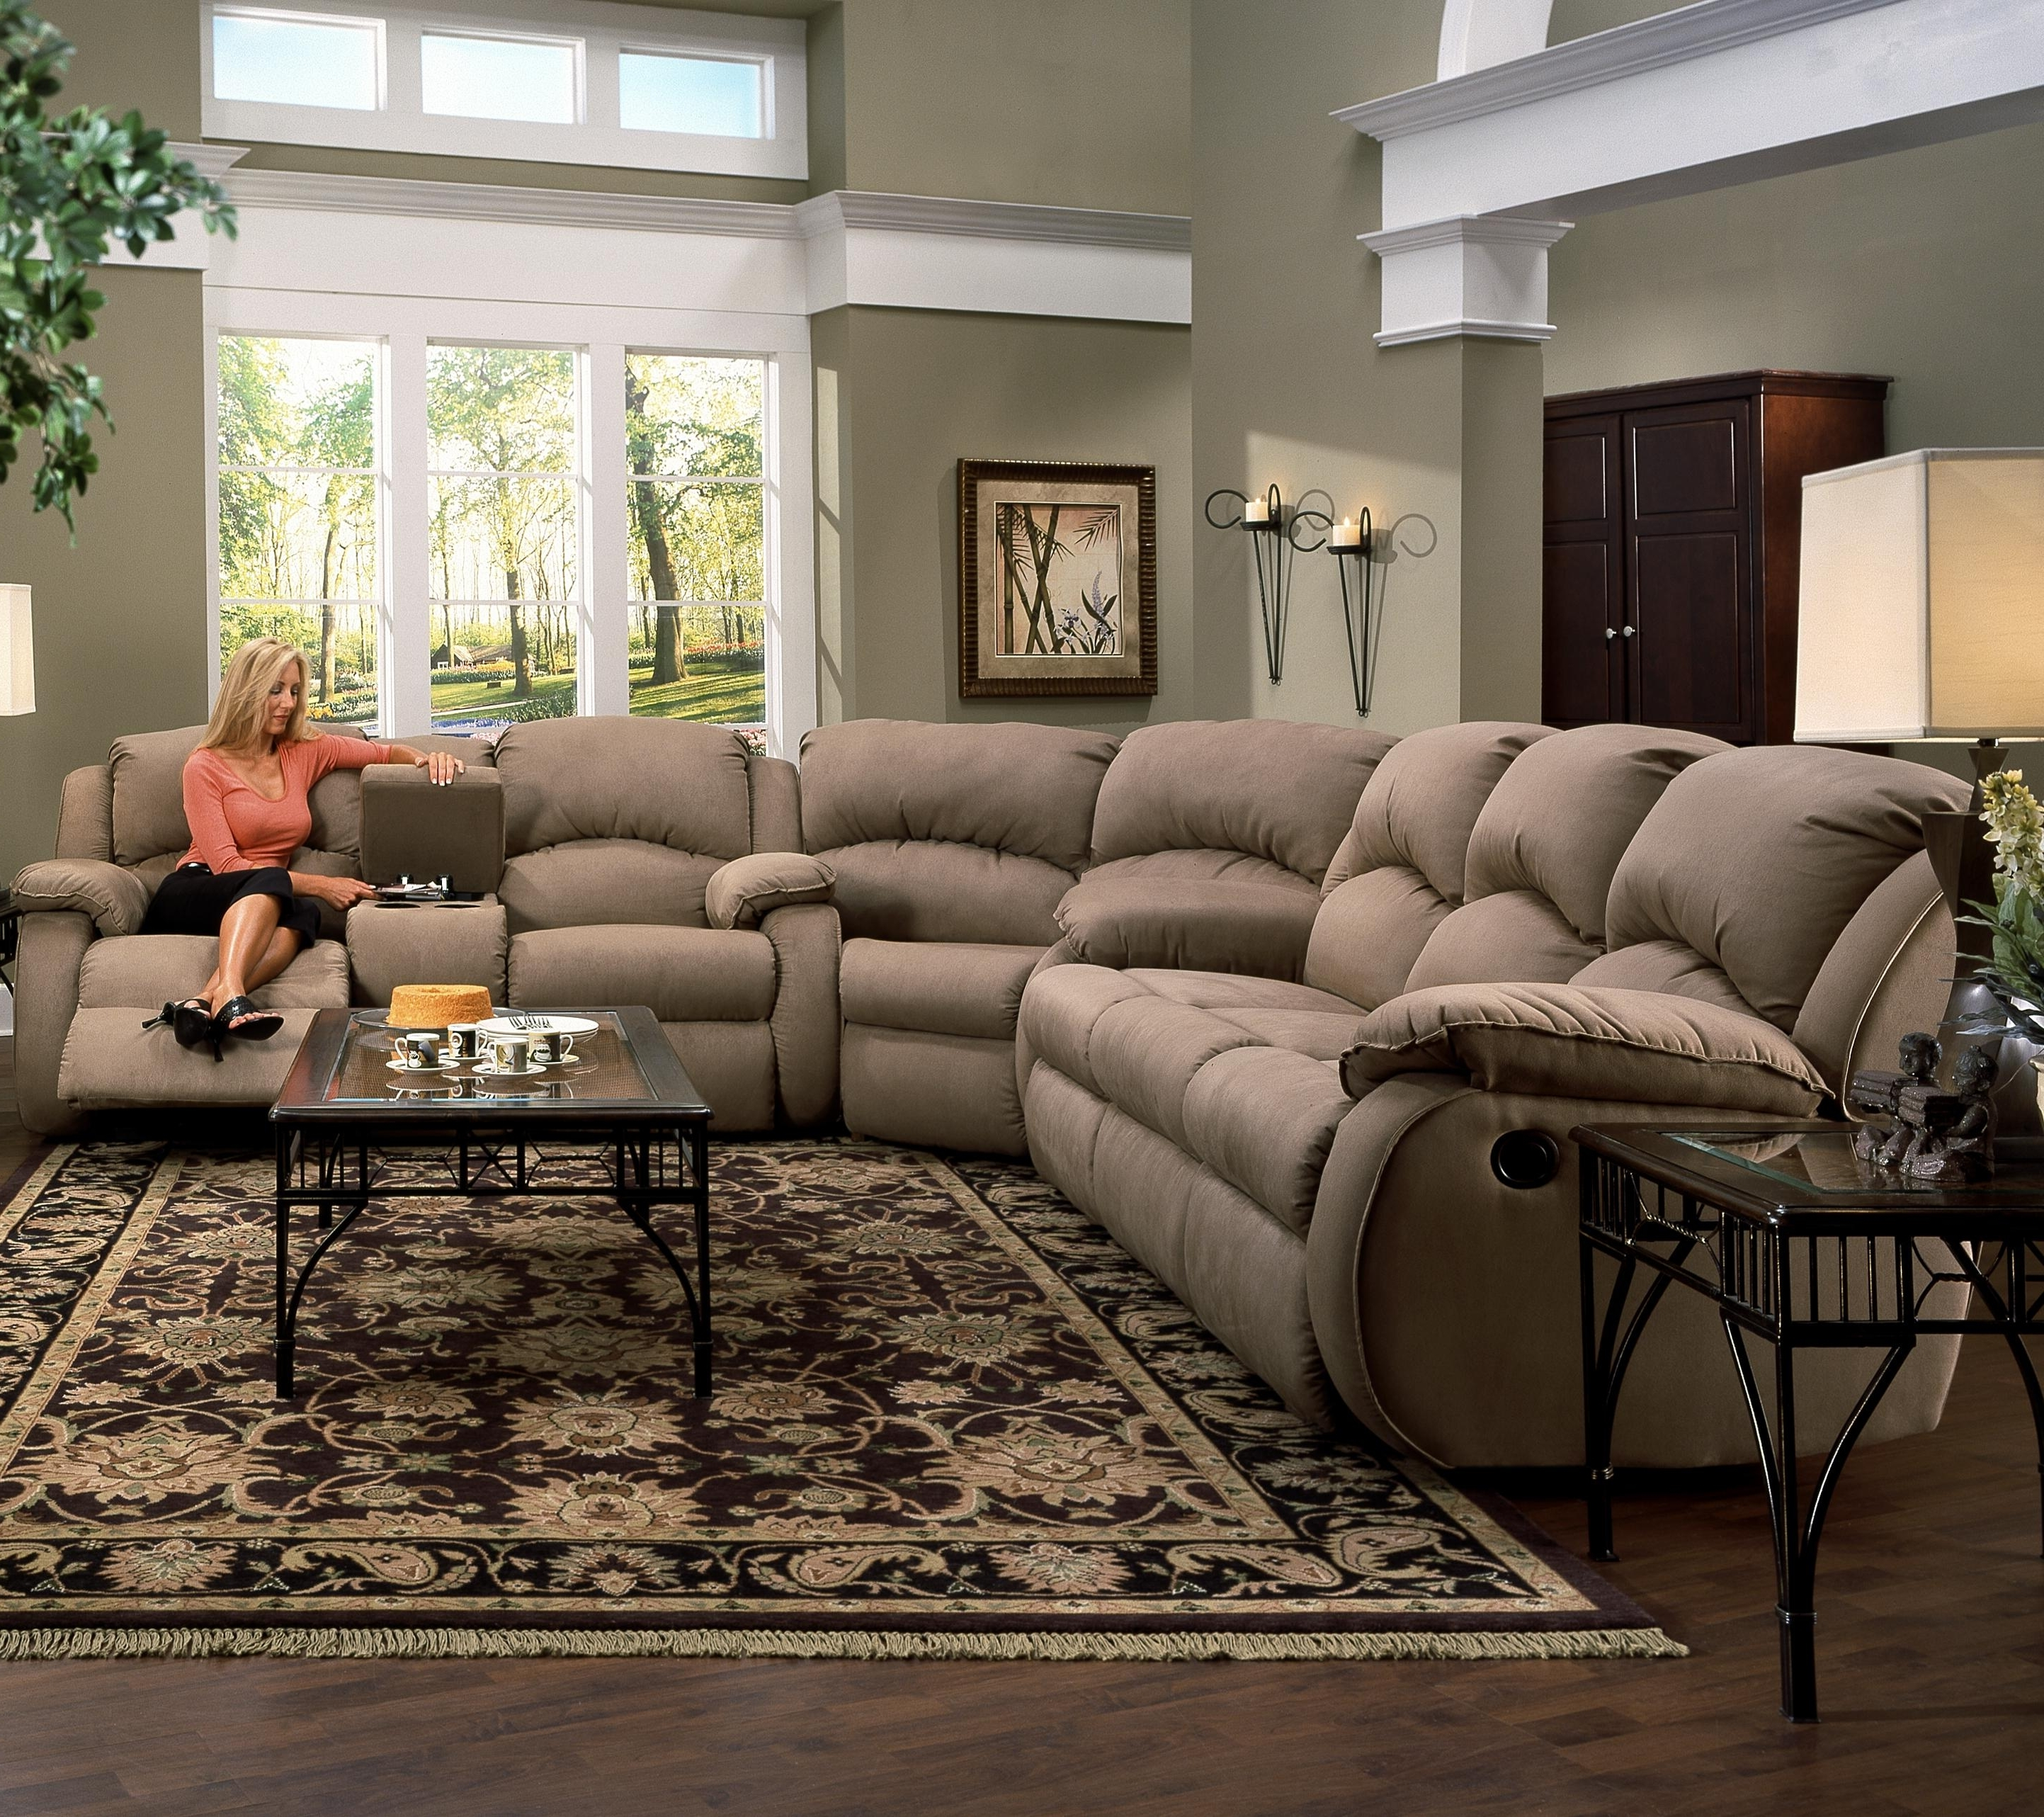 Aifaresidency Intended For Widely Used Sectional Sofas With Recliners (View 4 of 15)